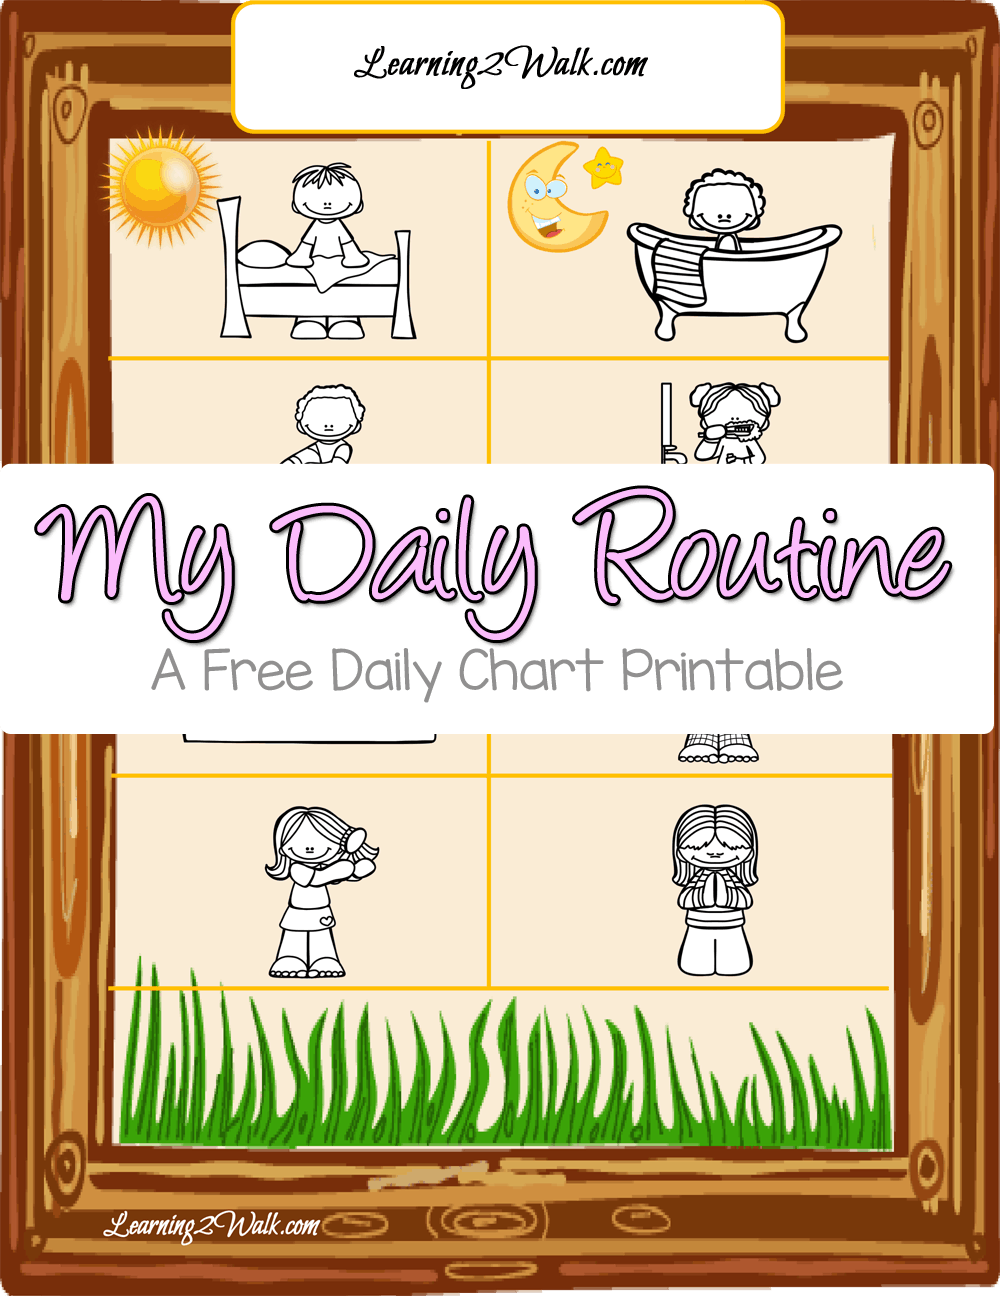 Teaching Responsibility: Simple Daily Routine Chart for Kids